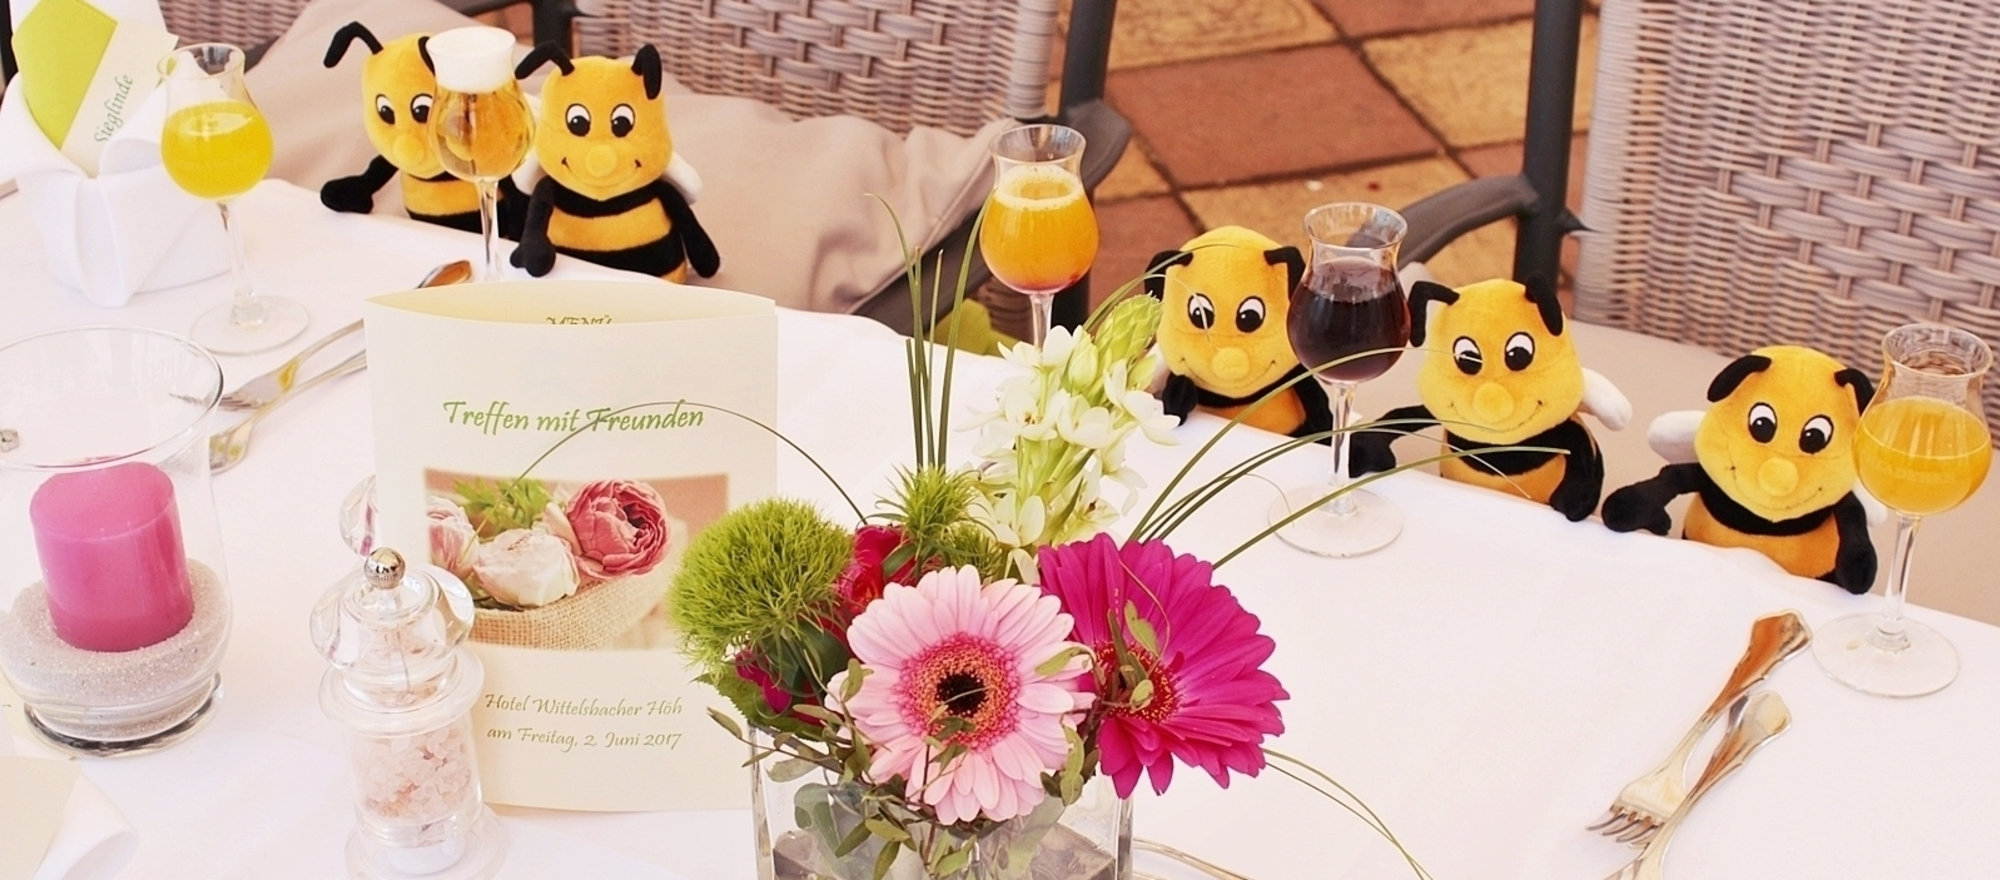 Ringhotels mascot Paul celebrates with friends in the 3-star-superior hotel Ringhotel Wittelsbacher Hoeh in Wuerzburg